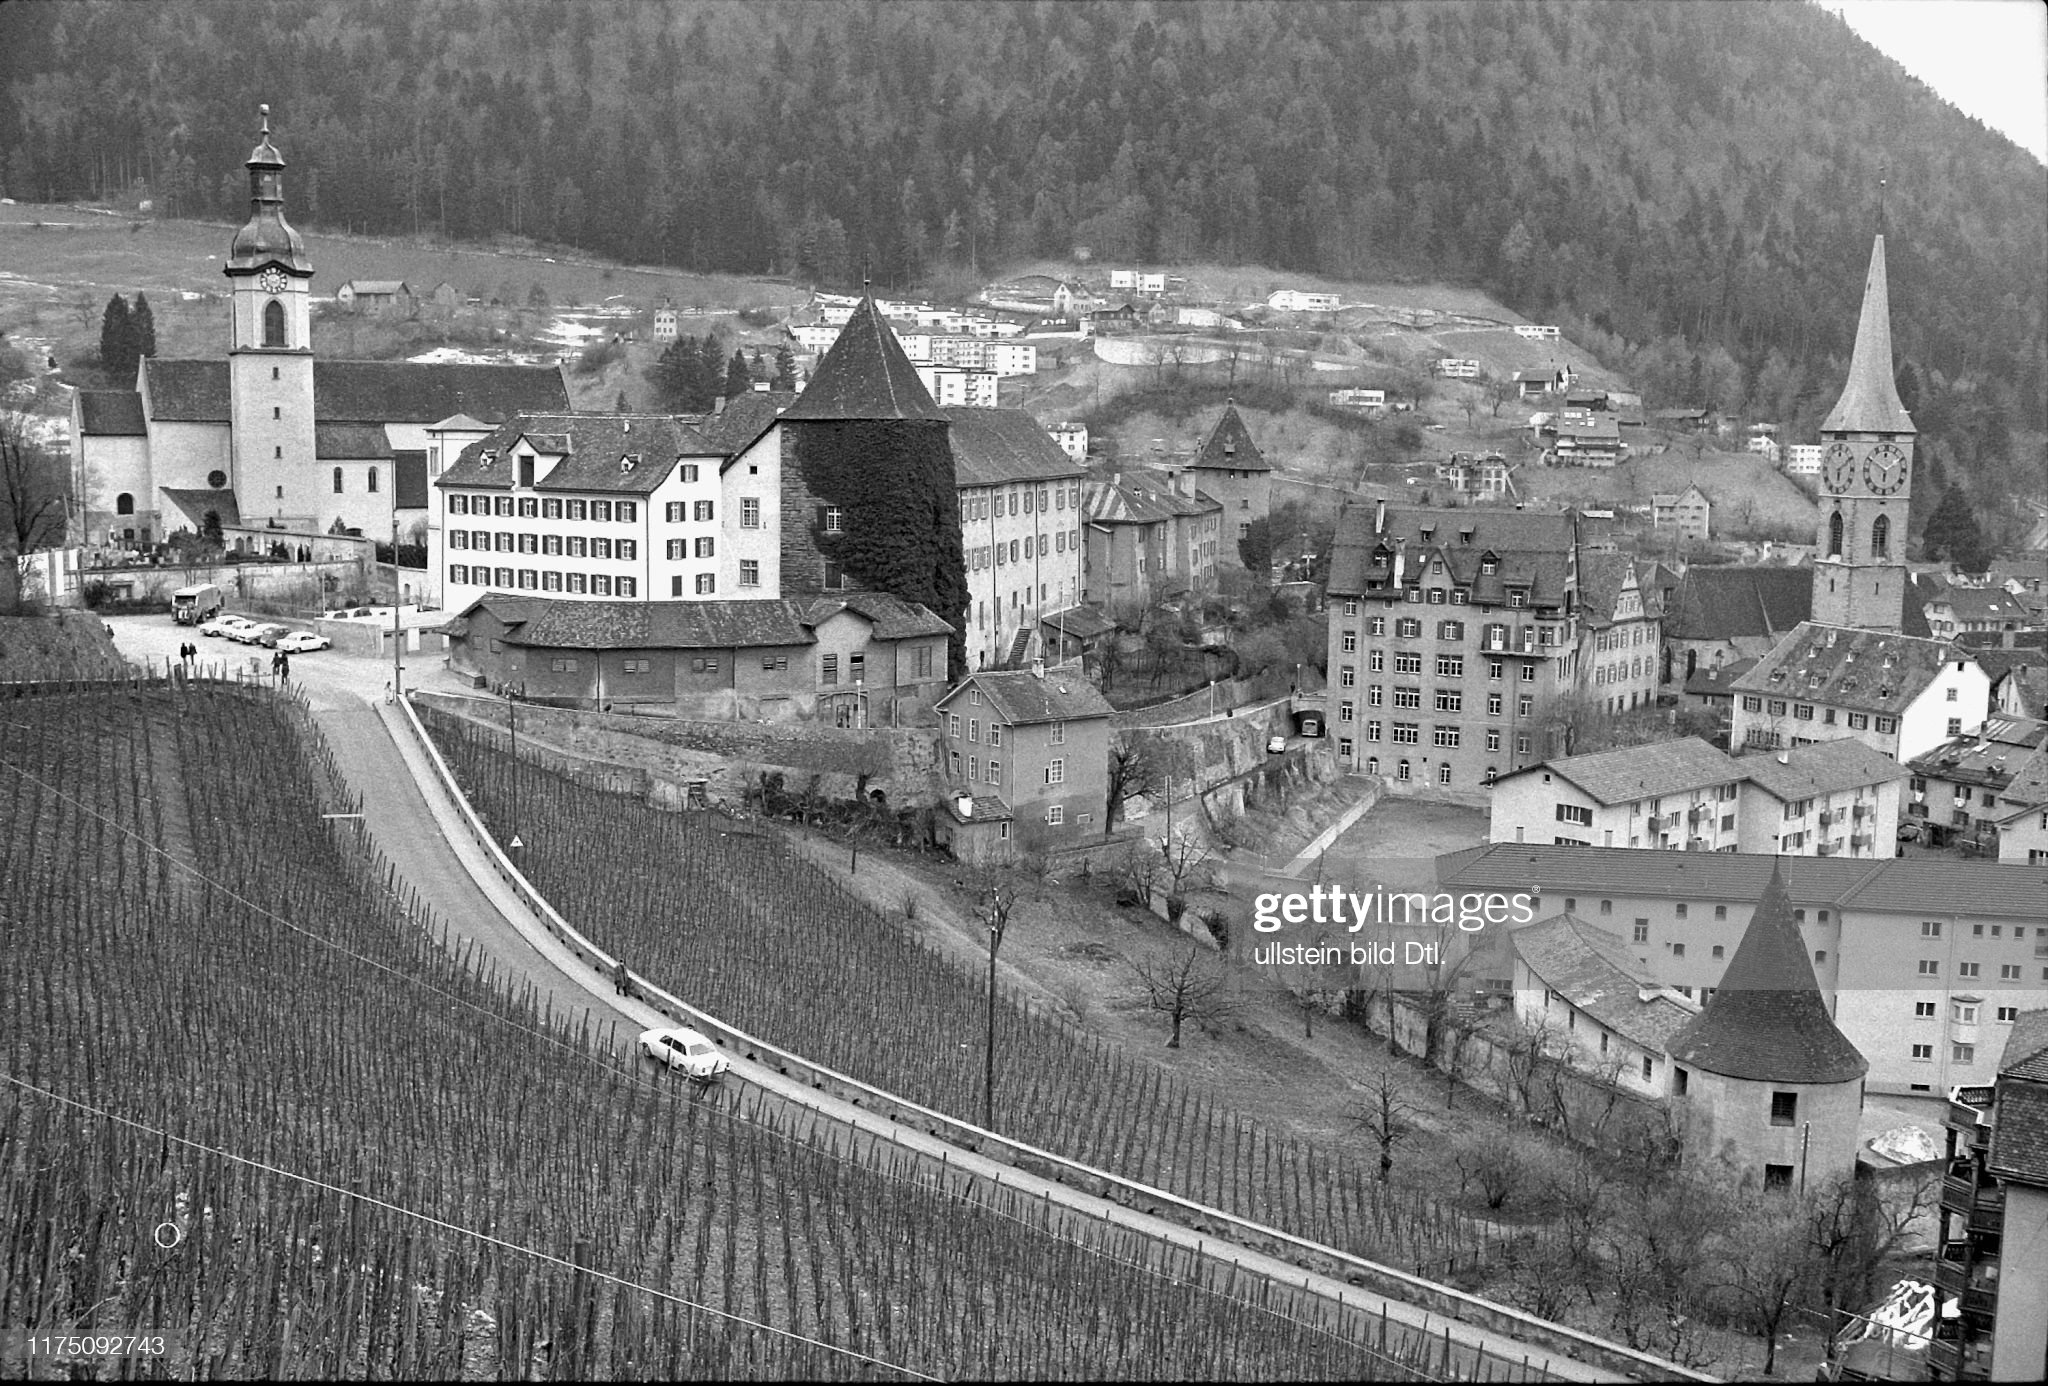 Sennhof prison in Chur, 1970 : News Photo